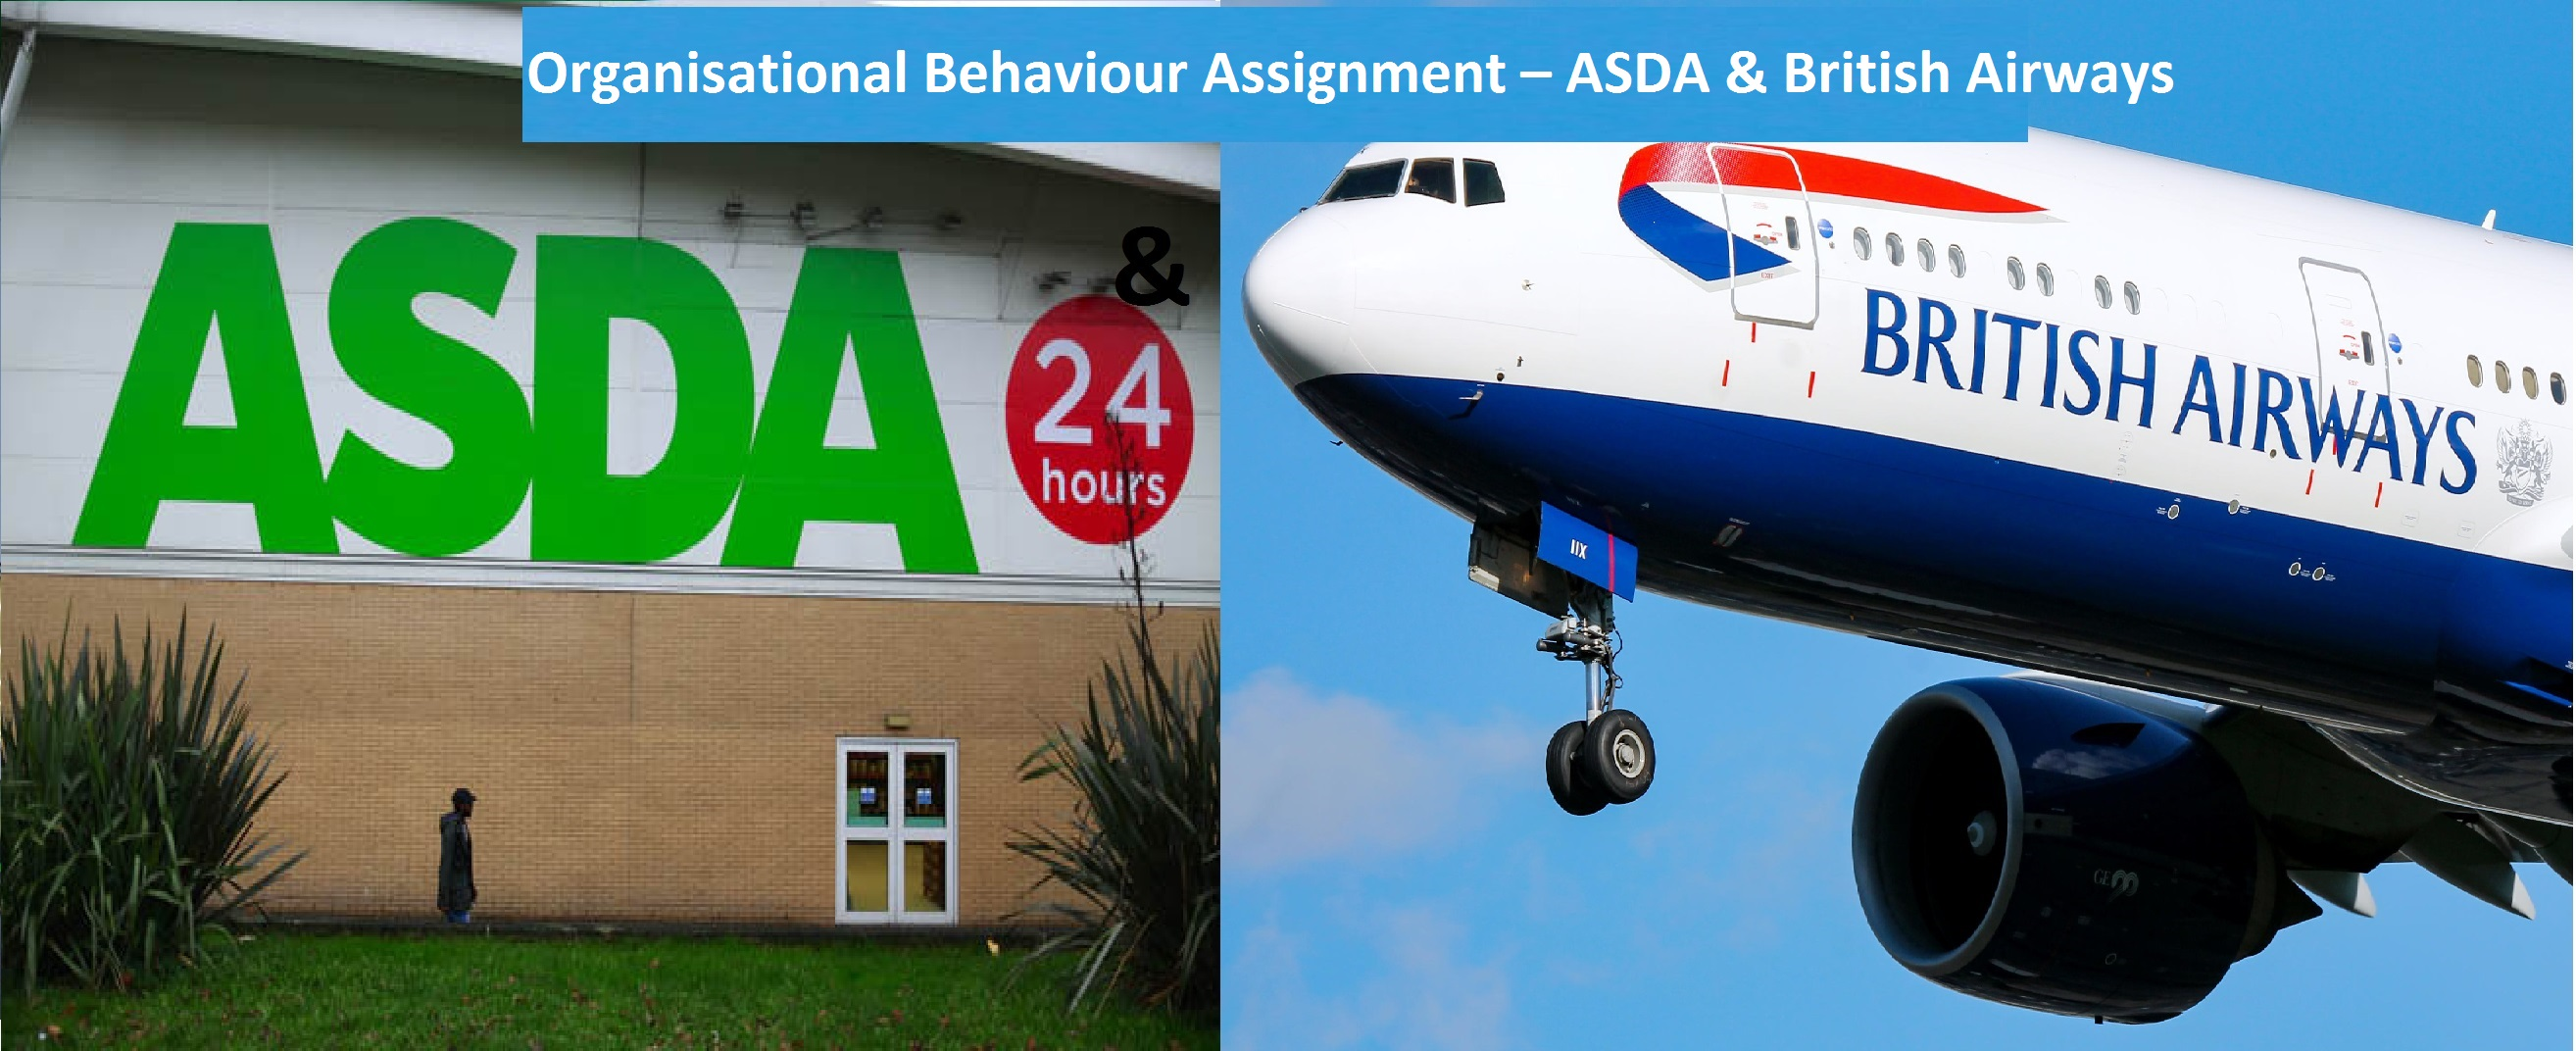 Business, management, education, Organisational Behaviour Assignment British Airways & ASDA, Organisational Behaviour Assignment, Organisational Behaviour, British Airways & ASDA Assignment, Assignment Help, Online Assignment Help, Assignment Writing Service, Assignment Help UK, Assignment Help Coventry, Assignment Help London, Cheap Assignment Help, Icon College Assignment Help